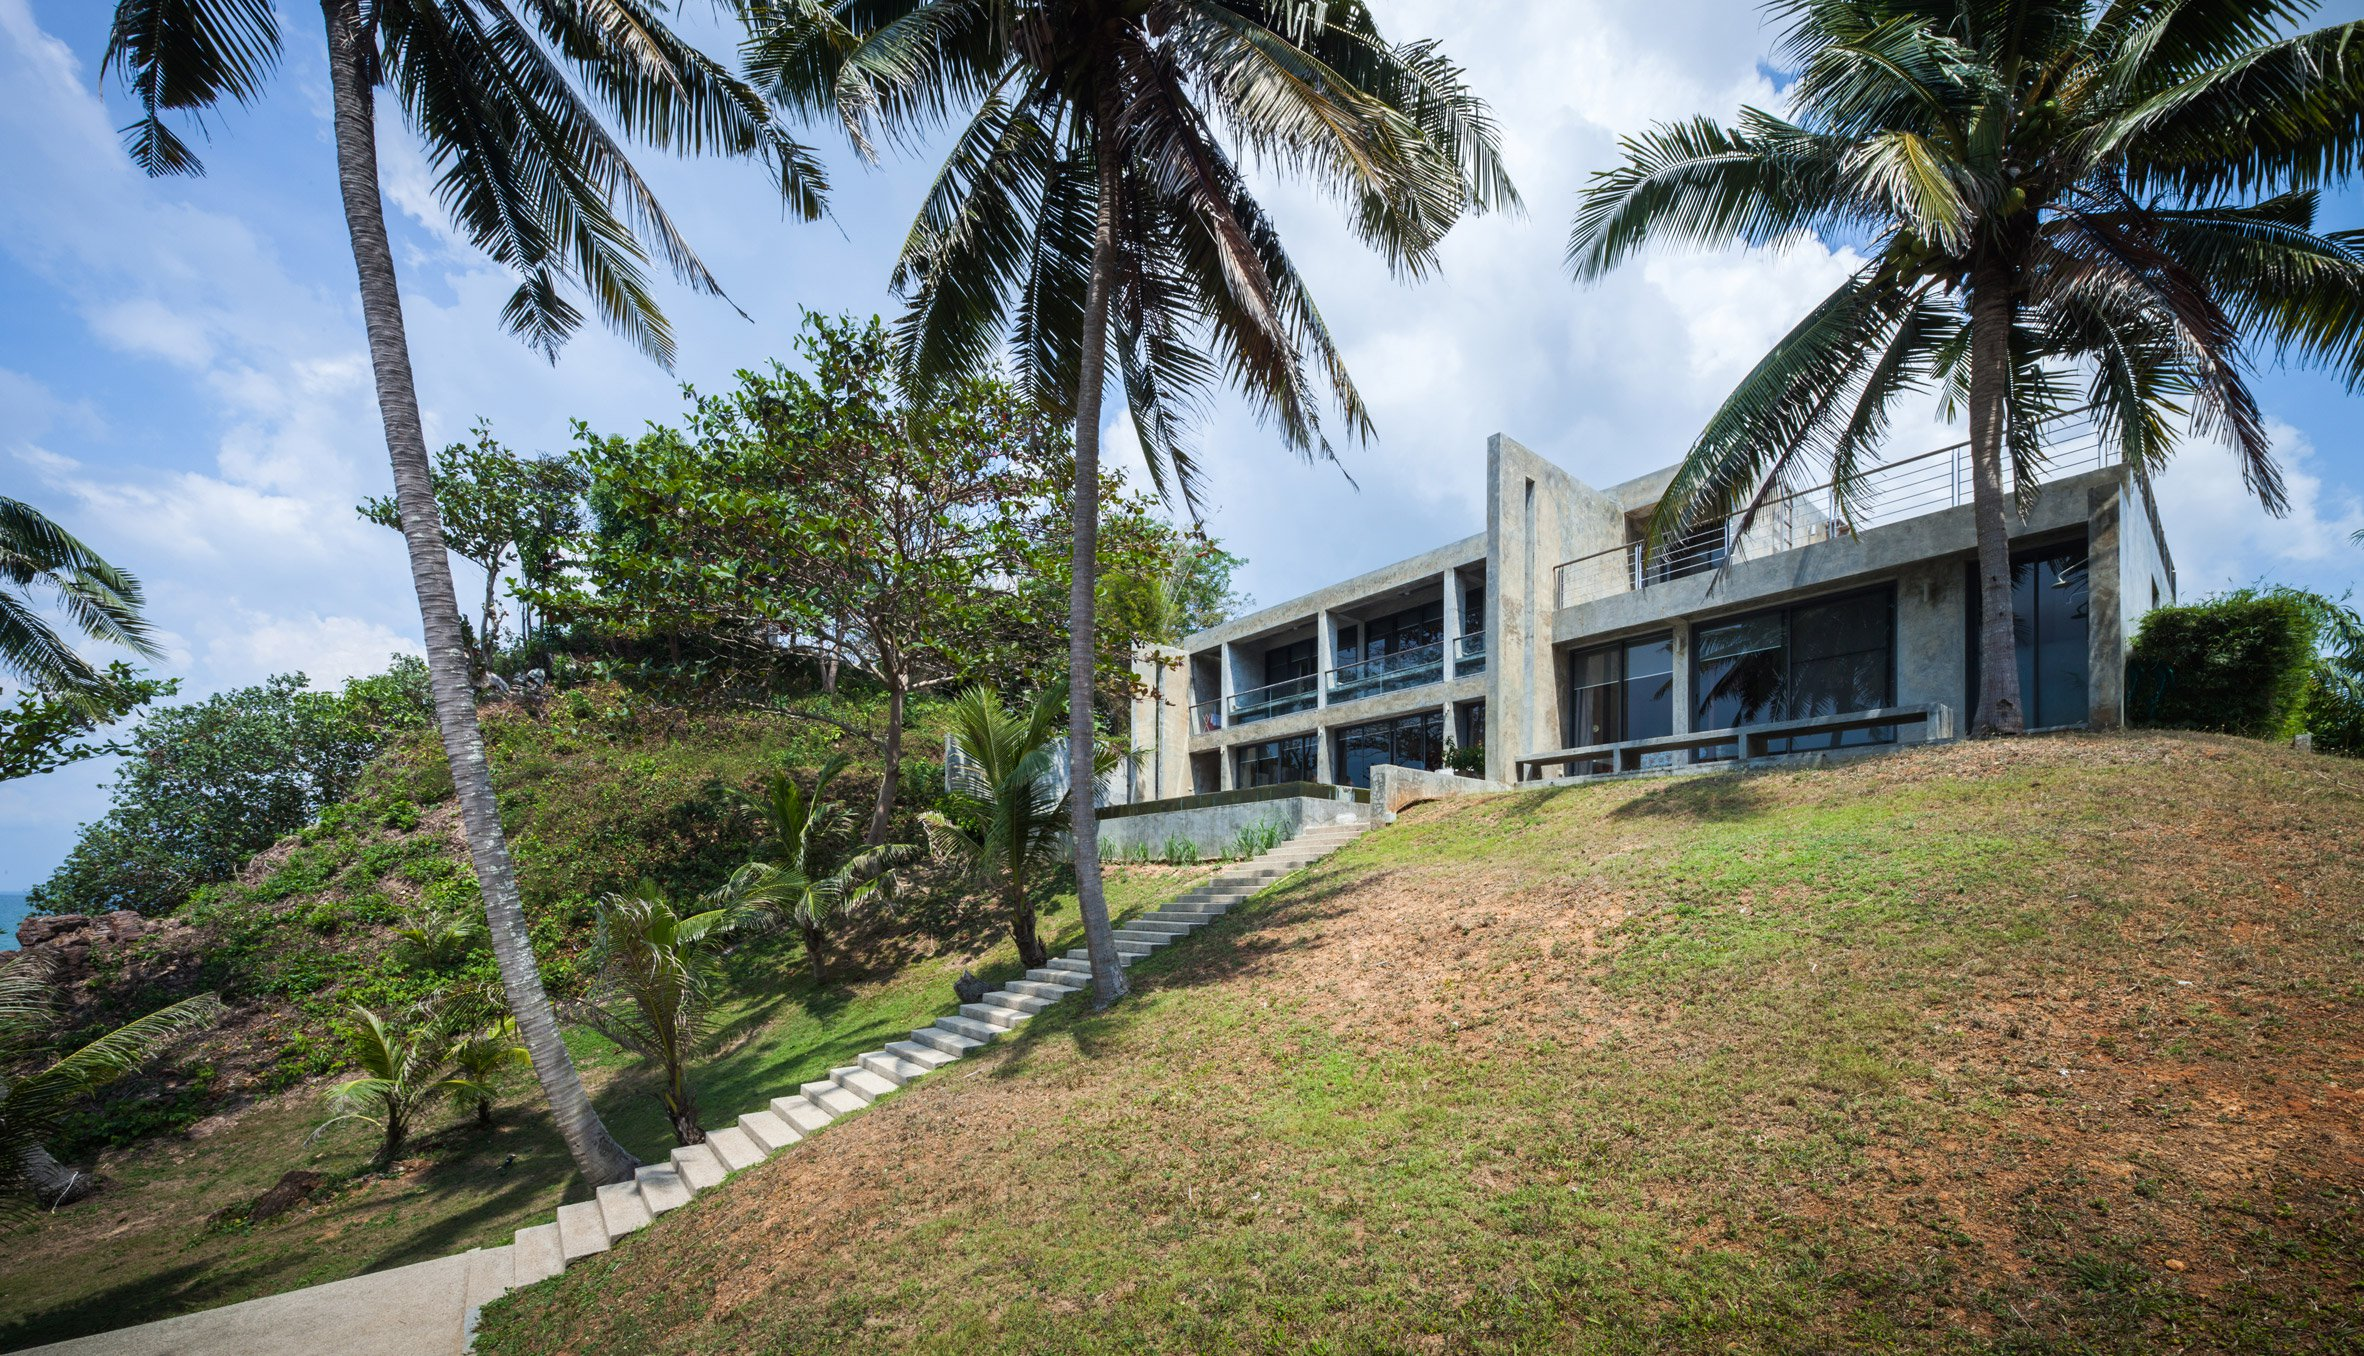 Jun Sekino completes Bauhaus-inspired beach house in eastern Thailand